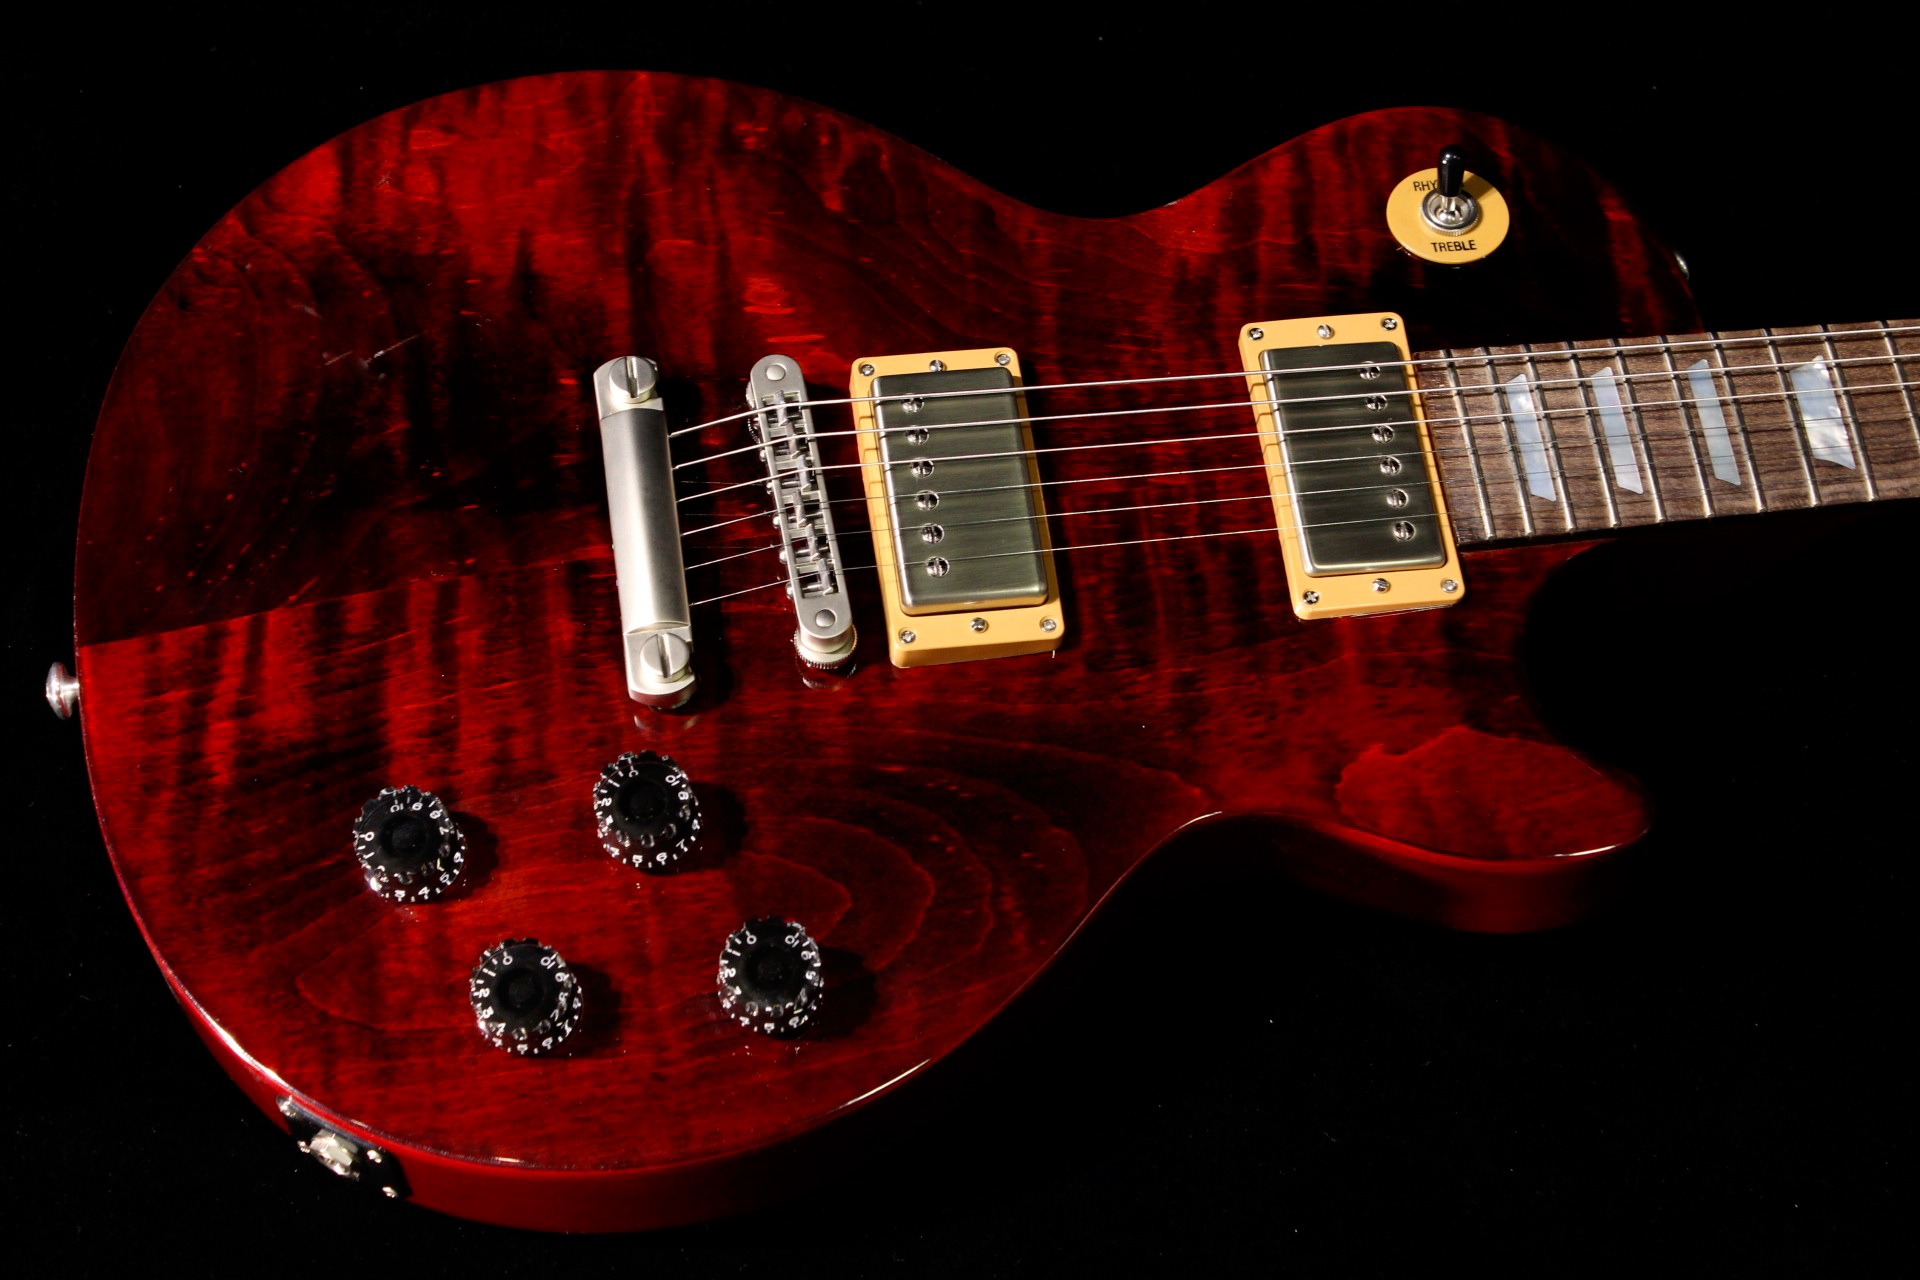 Gibson Les Paul Studio 2015 Wine Red Sn 150002118